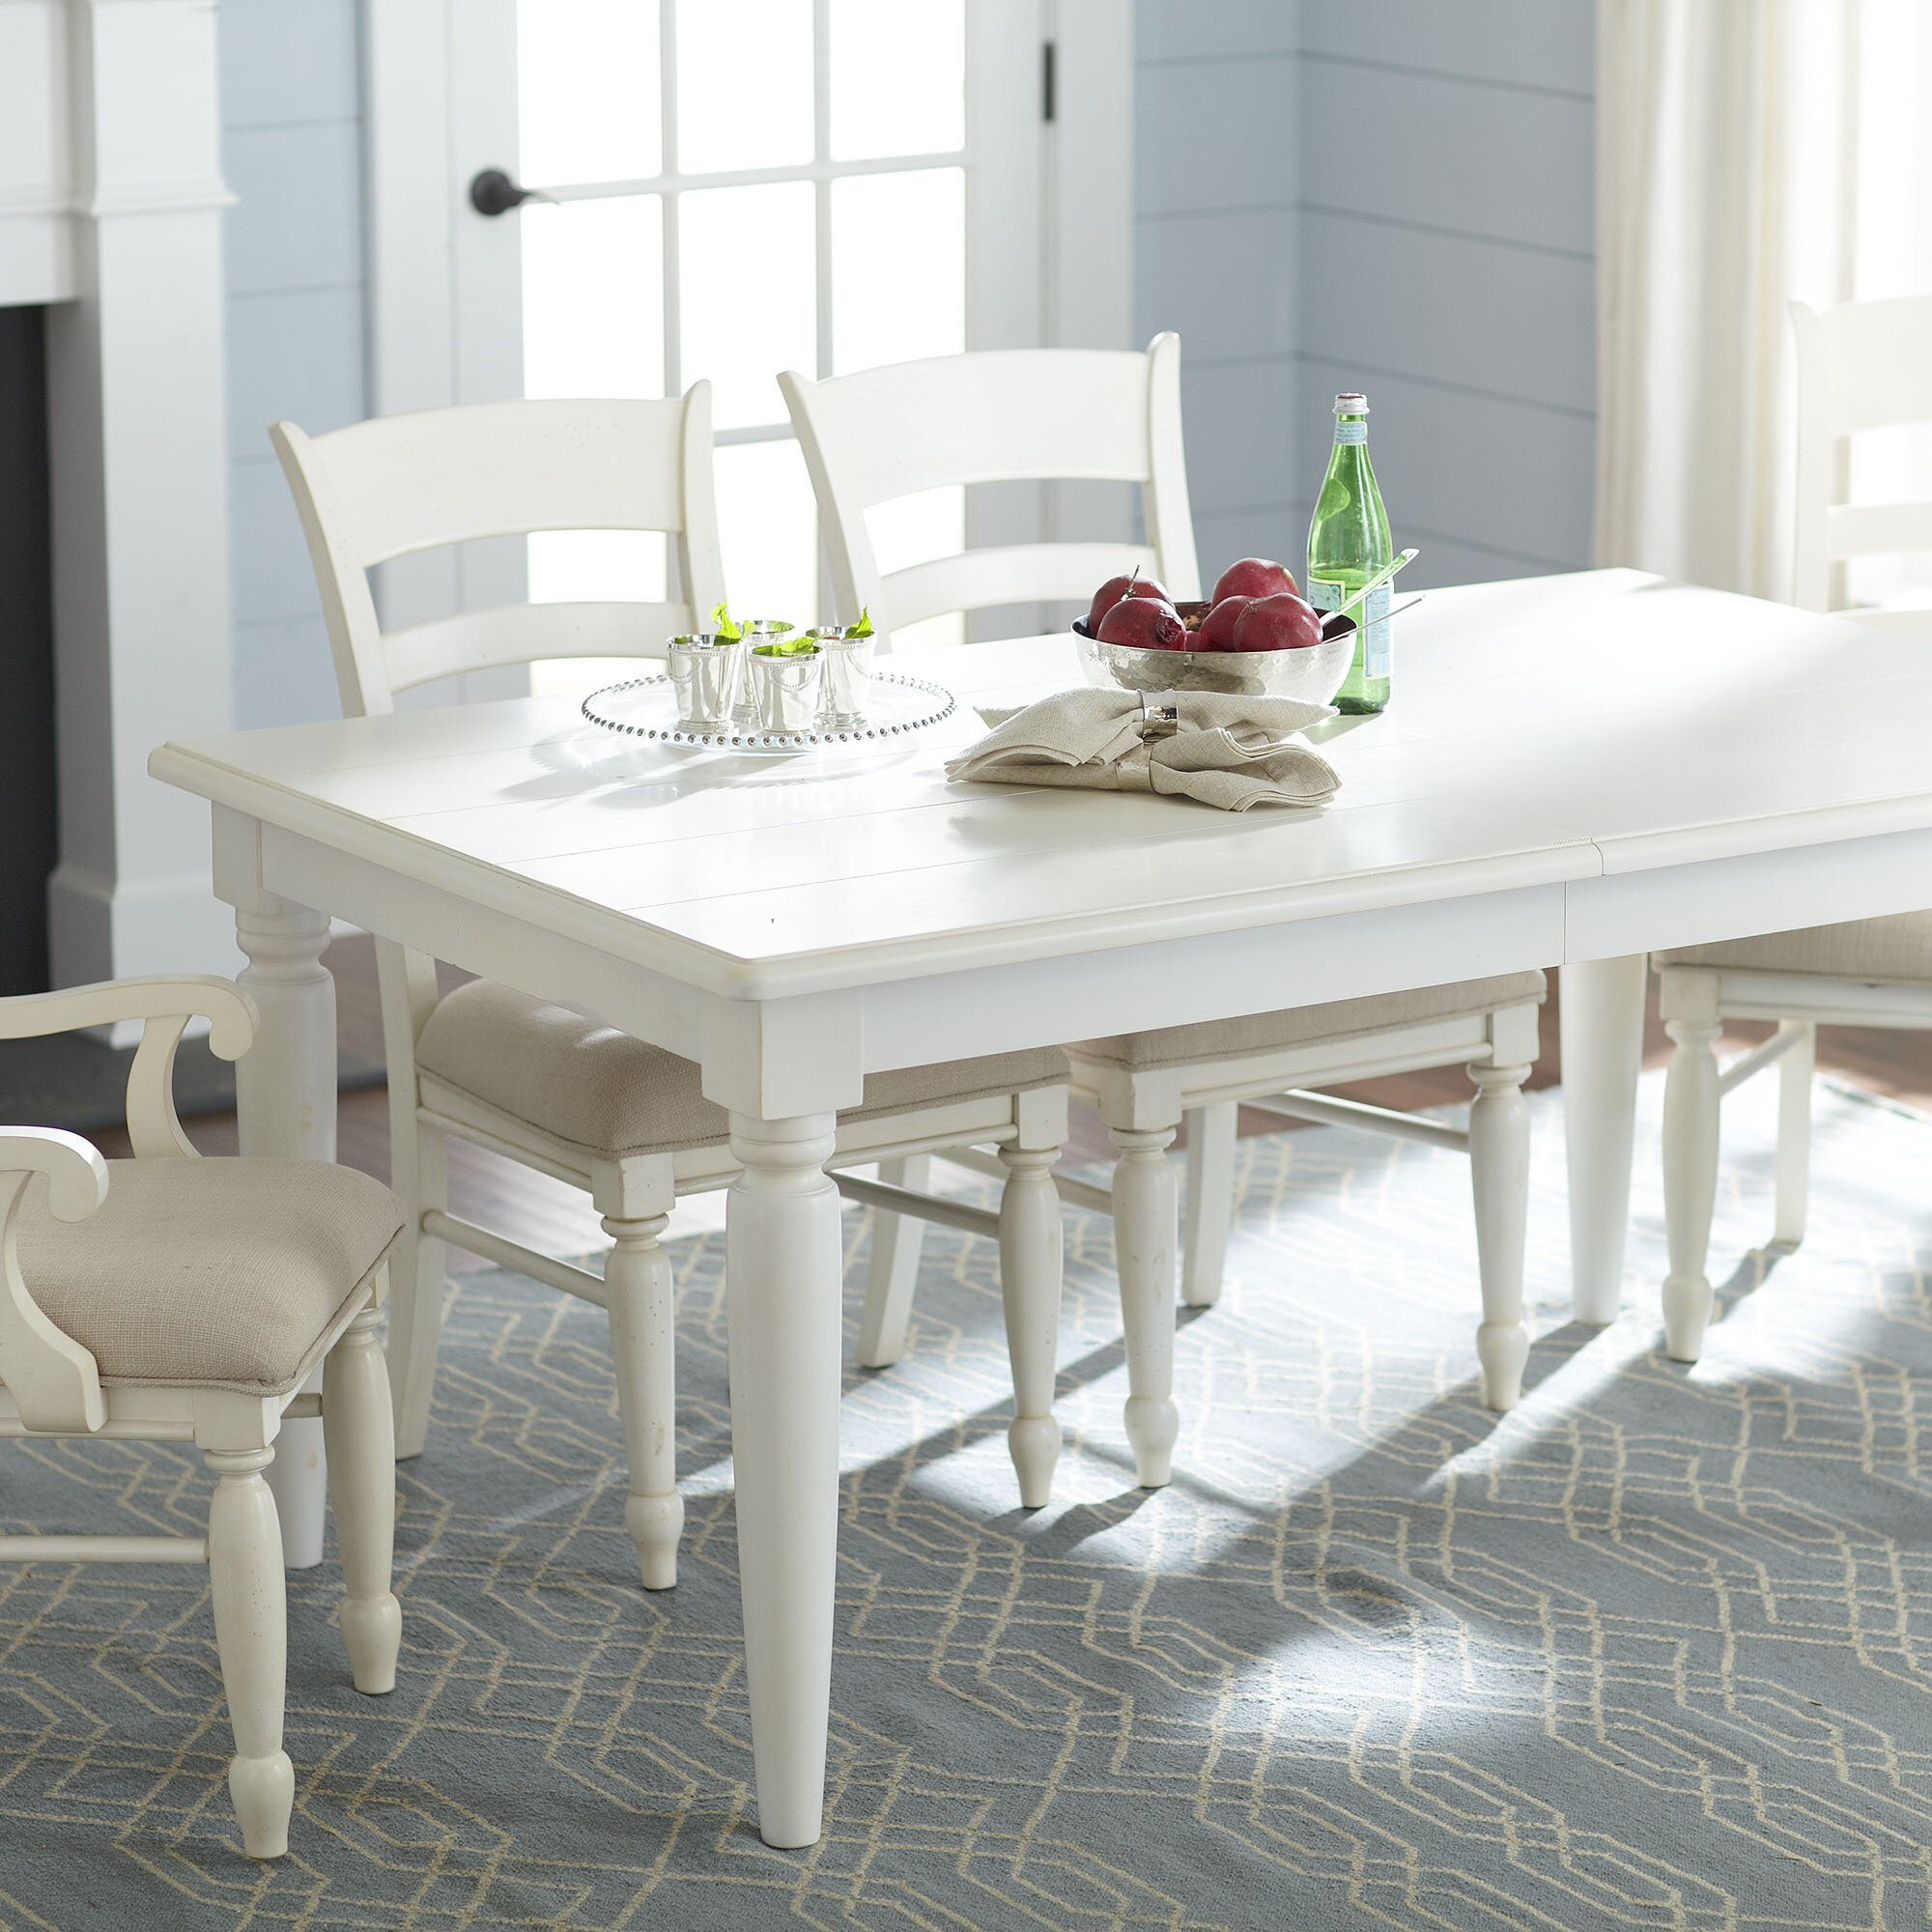 table in the modern rustic style large dining handmade from